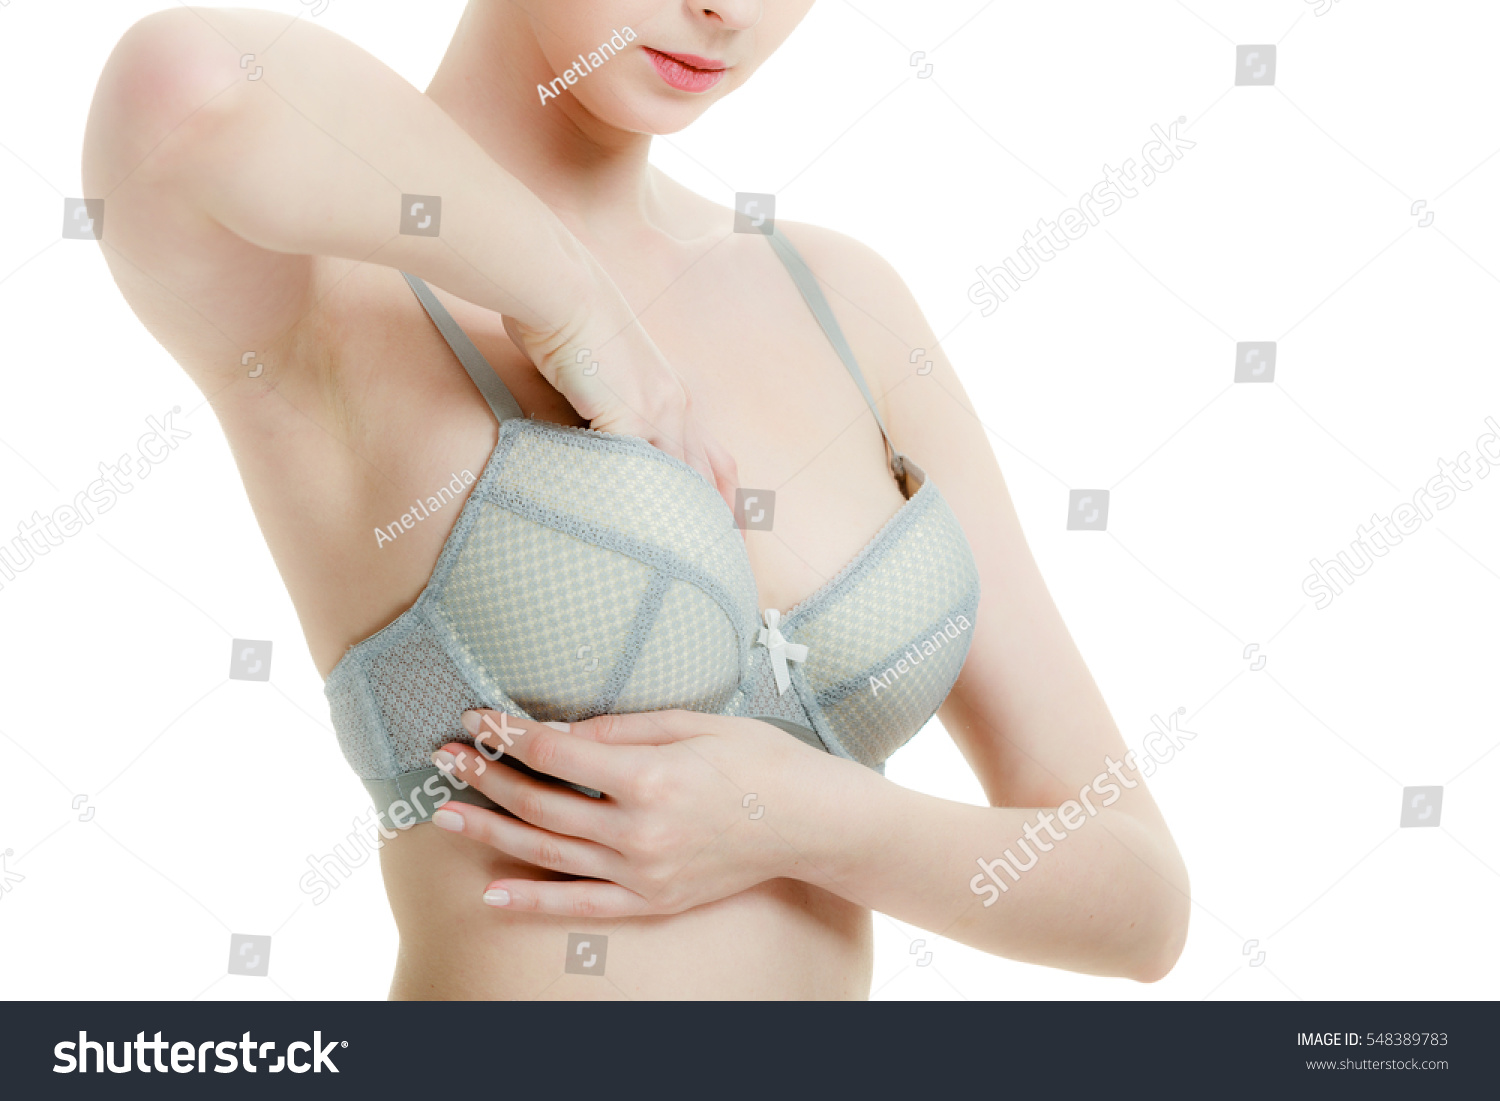 Woman Bra Lace Lingerie Taking Care Stock Photo 548389783 ...